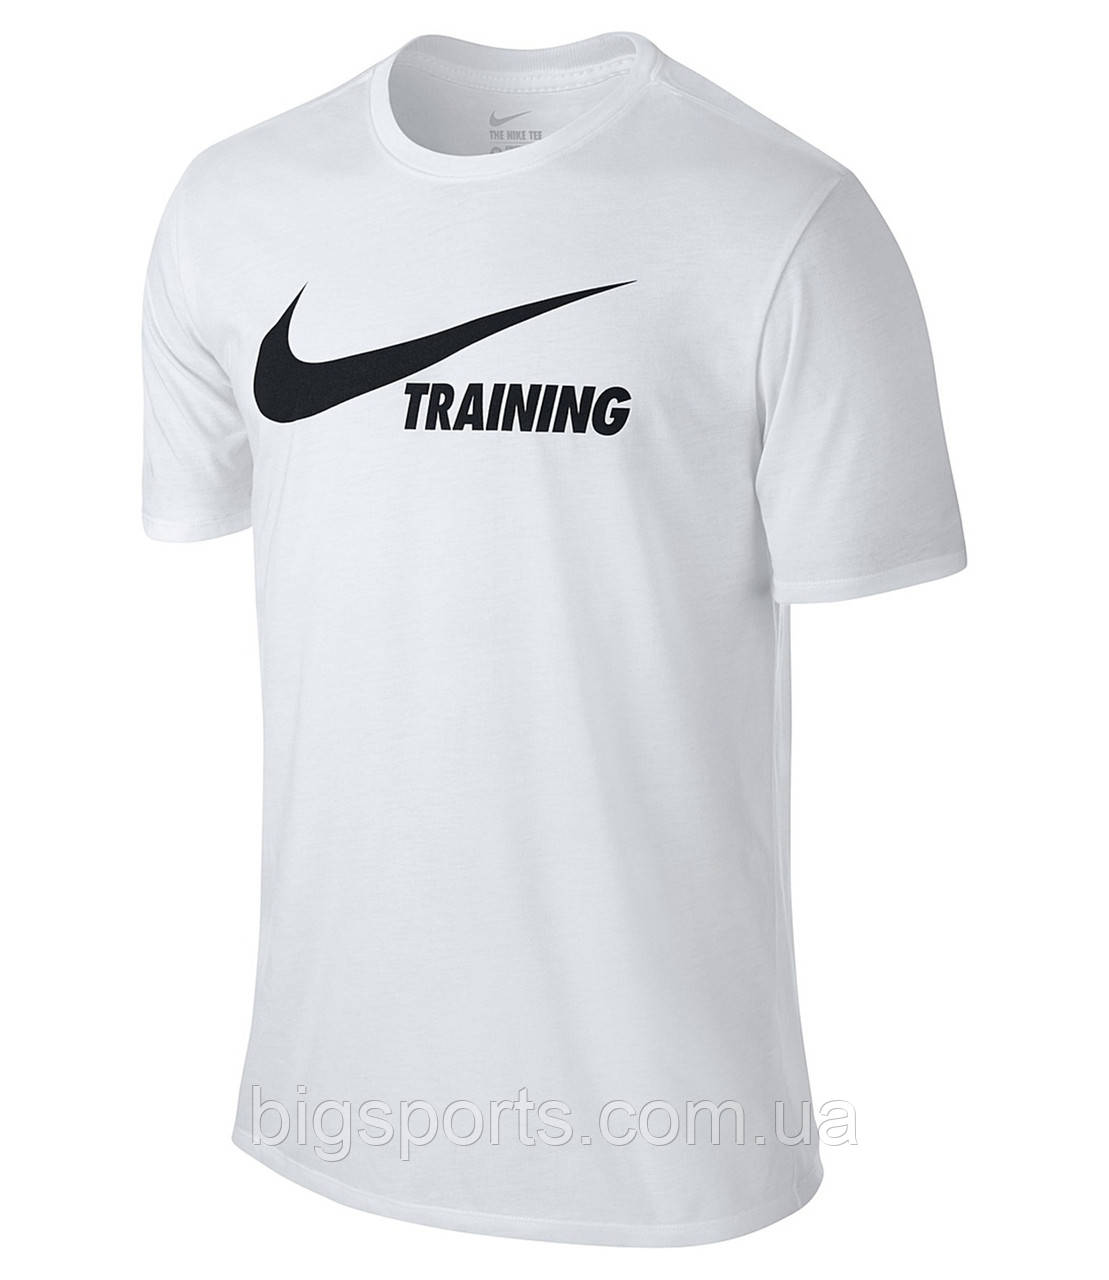 Футболка муж. Nike Swoosh Training T-Shirt (арт. 777358-101)